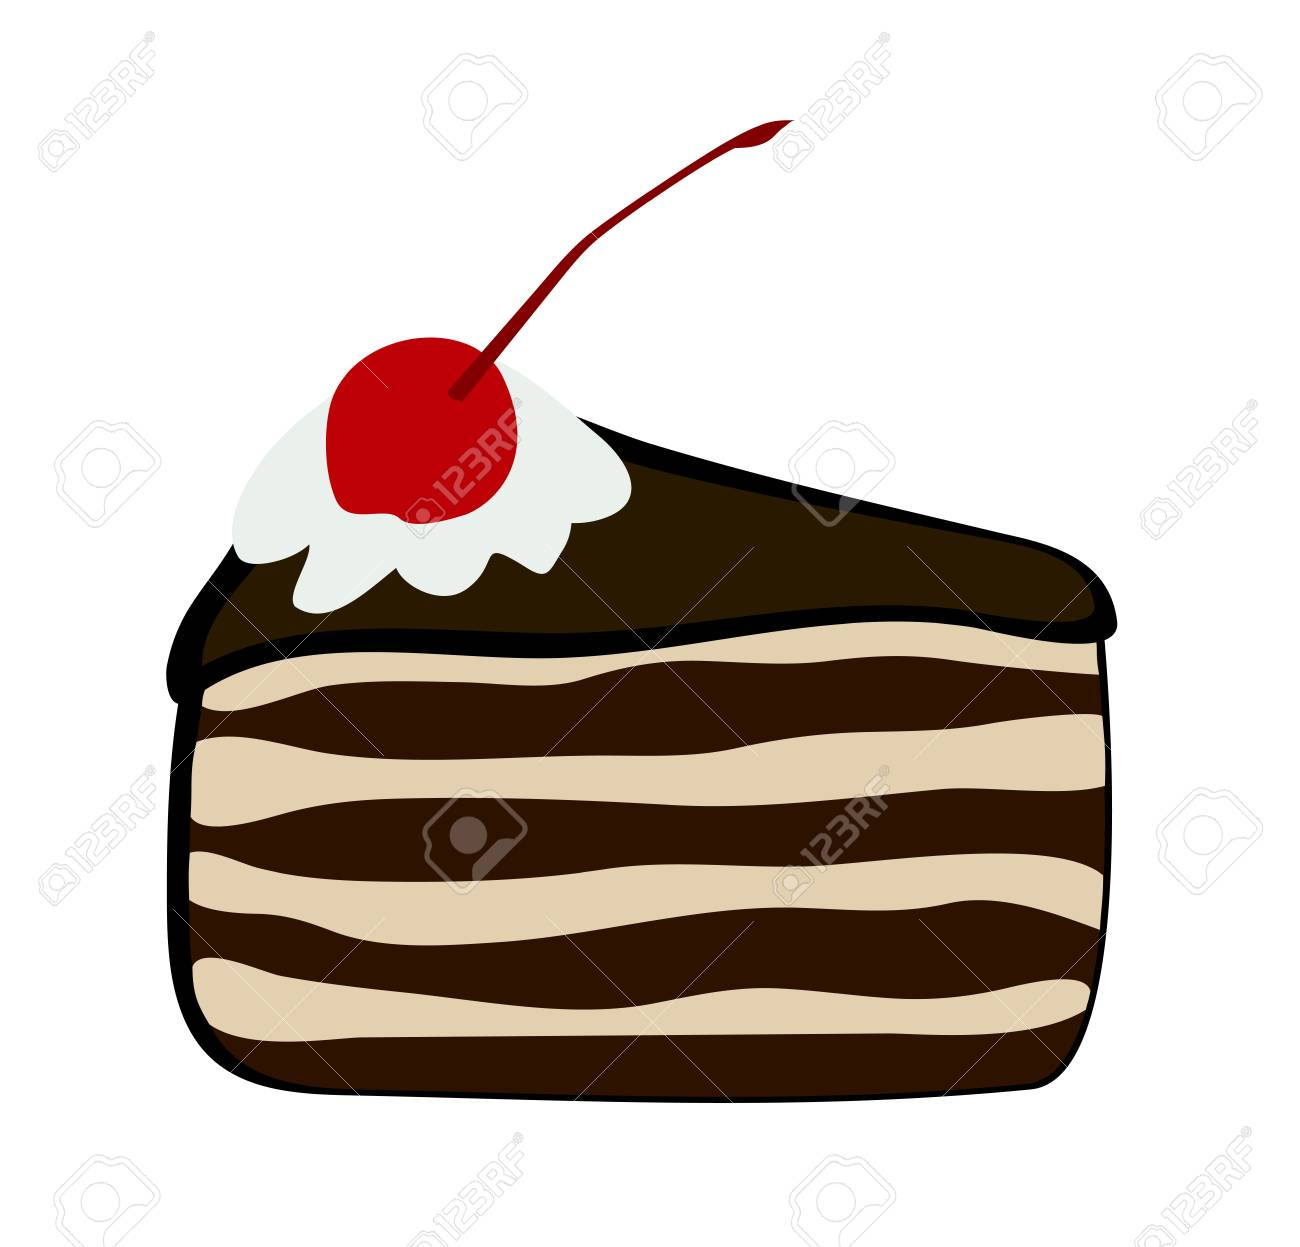 hight resolution of vector vector illustration flat cartoon triangular slice of cake black forest covered with chocolate glaze whipped cream and confectionery cherry